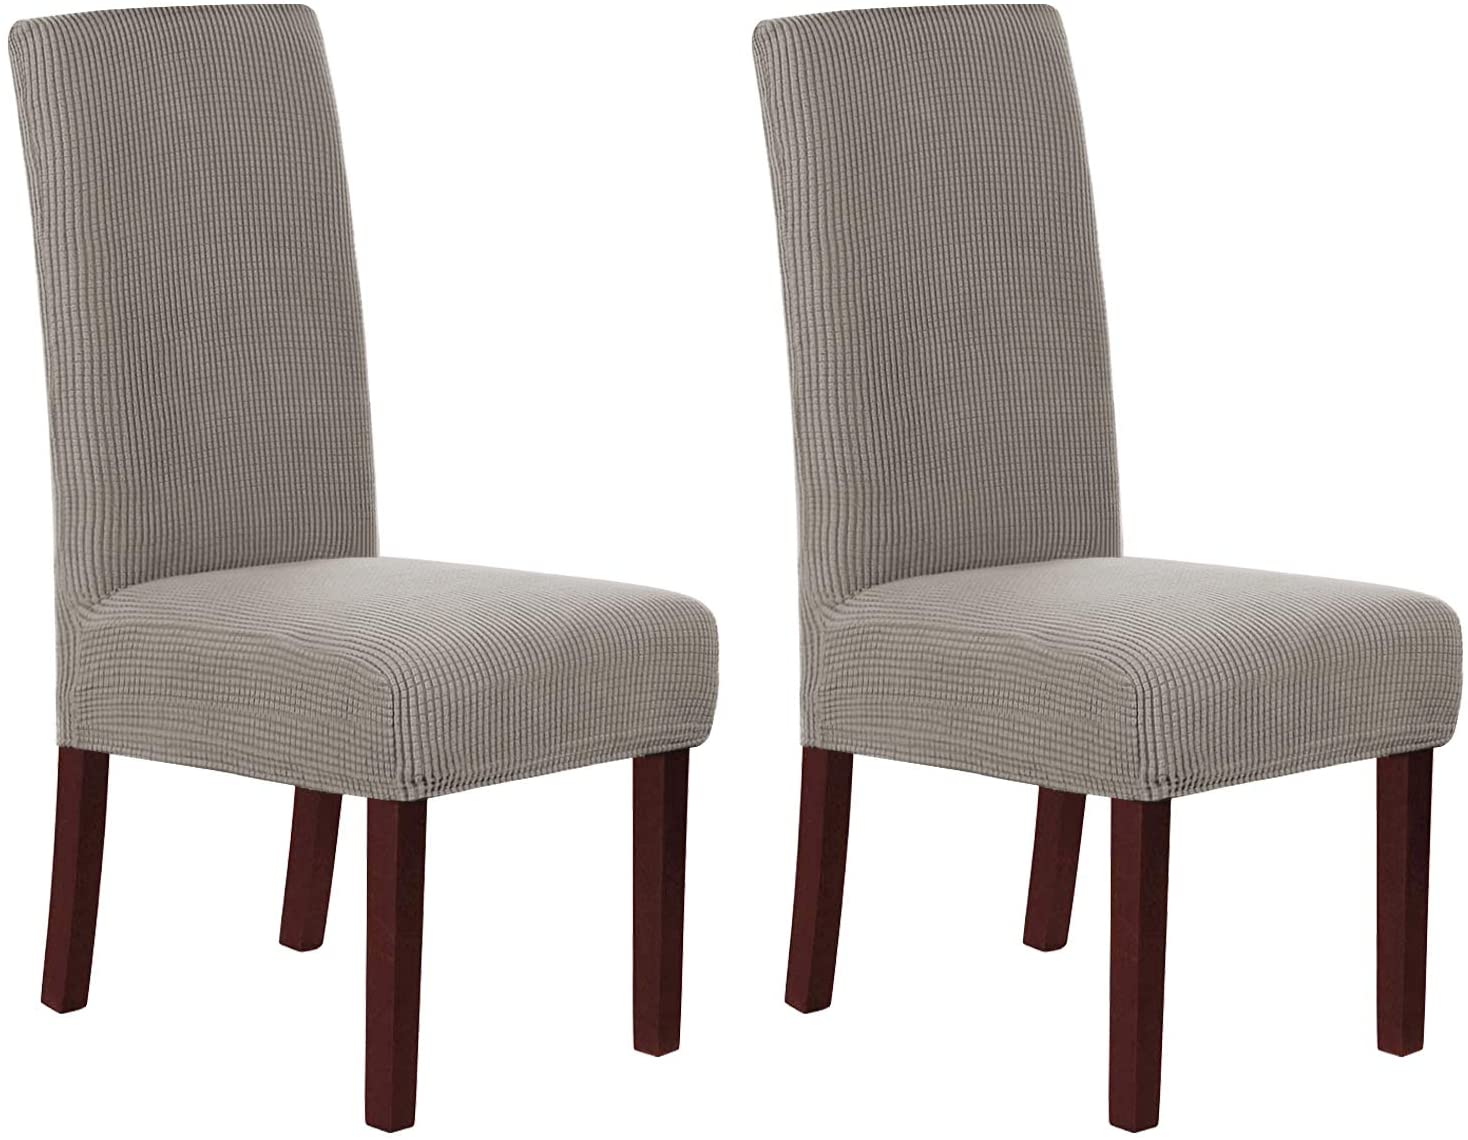 H.VERSAILTEX Stretch Dining Chair Covers Set of 2 Chair Covers for Dining Room Parsons Chair Slipcover Chair Protectors Covers Dining, Feature Textured Checked Jacquard Fabric, Taupe